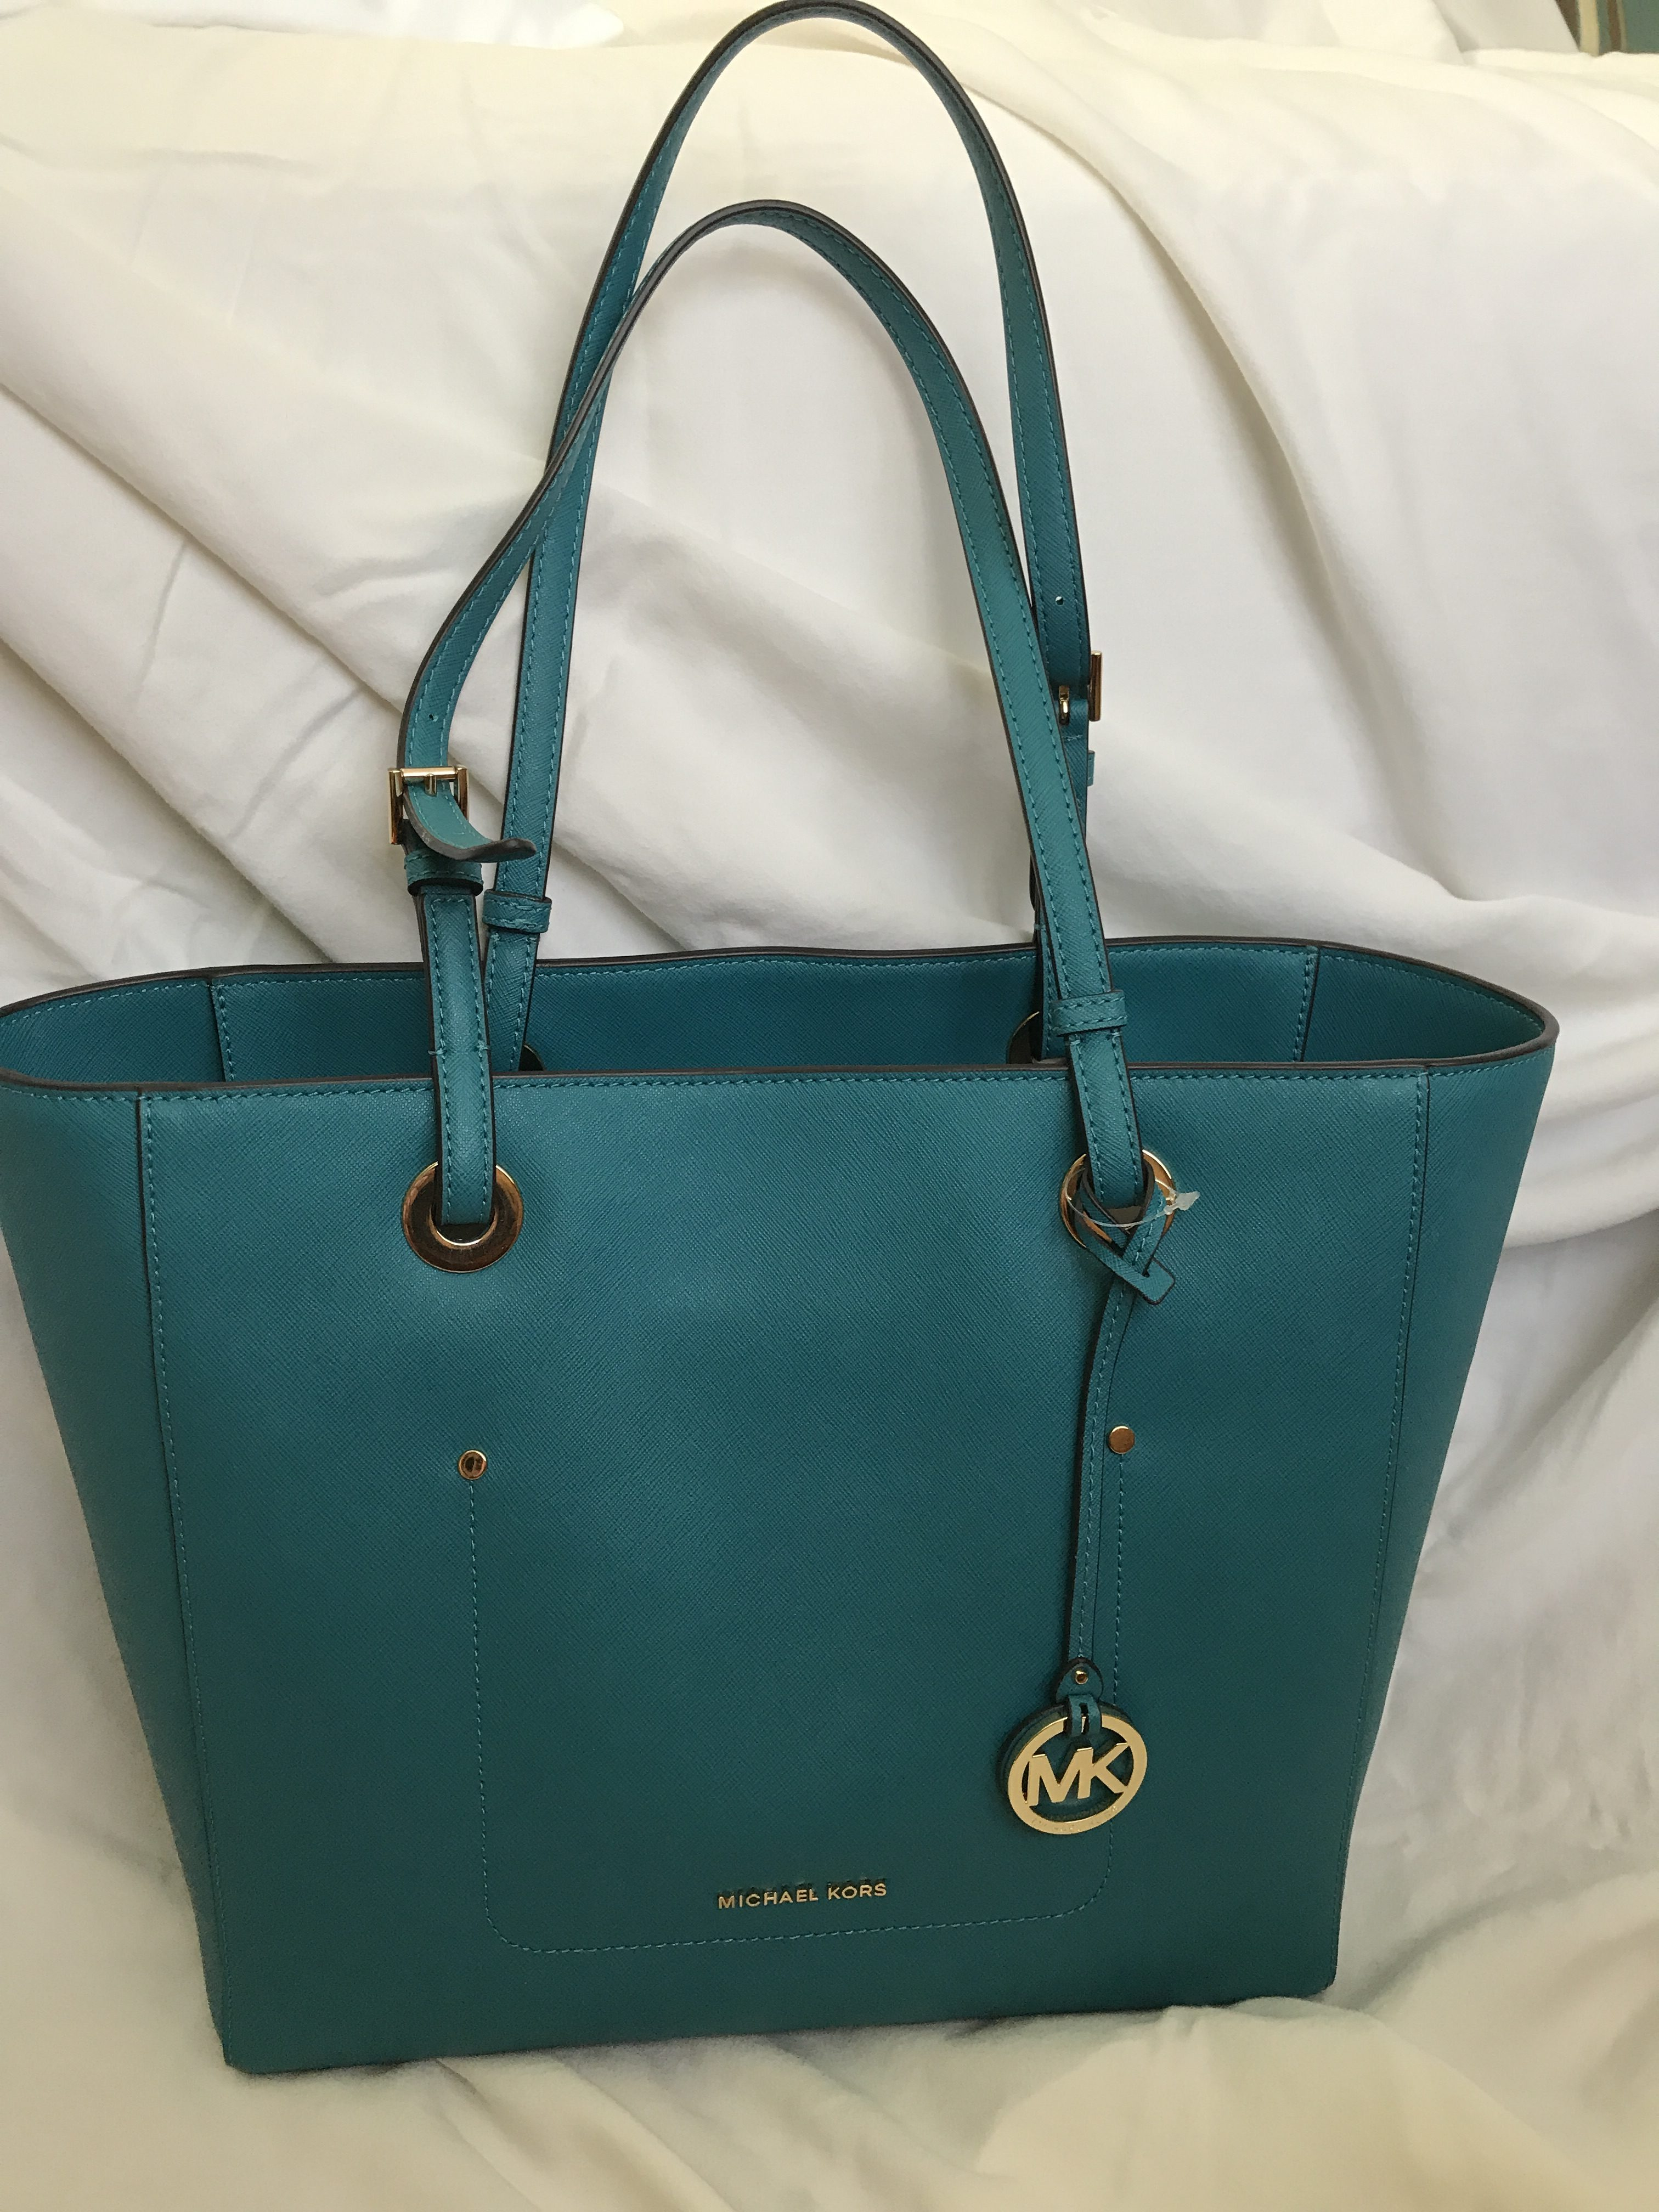 3dbb5c107bb Don't miss your chance to win this must-have Michael Kors Tote! Get your  tickets today for our October 15th Women's Forum event!